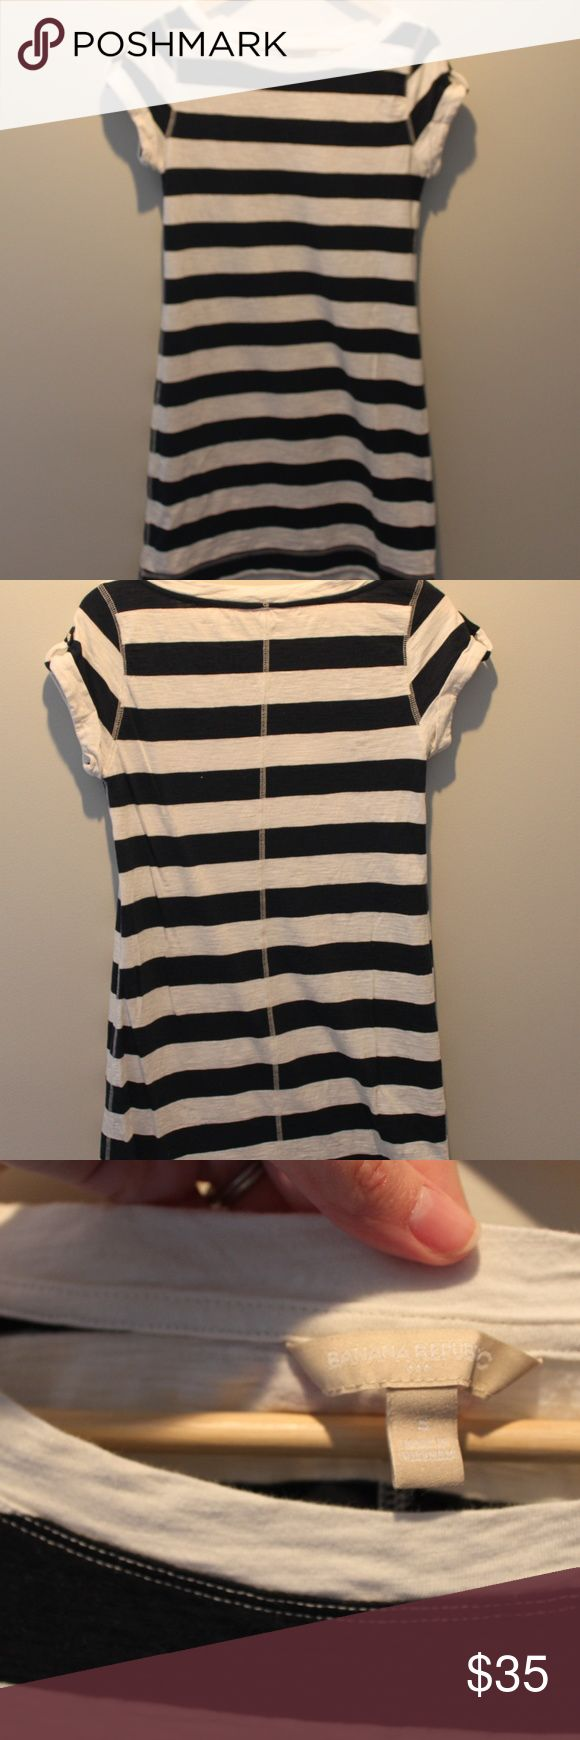 Banana Republic striped t-shirt dress - Size Small Banana Republic - Small - Navy & White Striped tshirt dress.  Roll up tabs with gold button on the sleeve (ornamental, no real purpose/function).  In great condition!  Some light fading from wash/wear, but otherwise a very comfortable dress!  Easy to dress up or down.  Hits midthigh. Banana Republic Dresses Midi